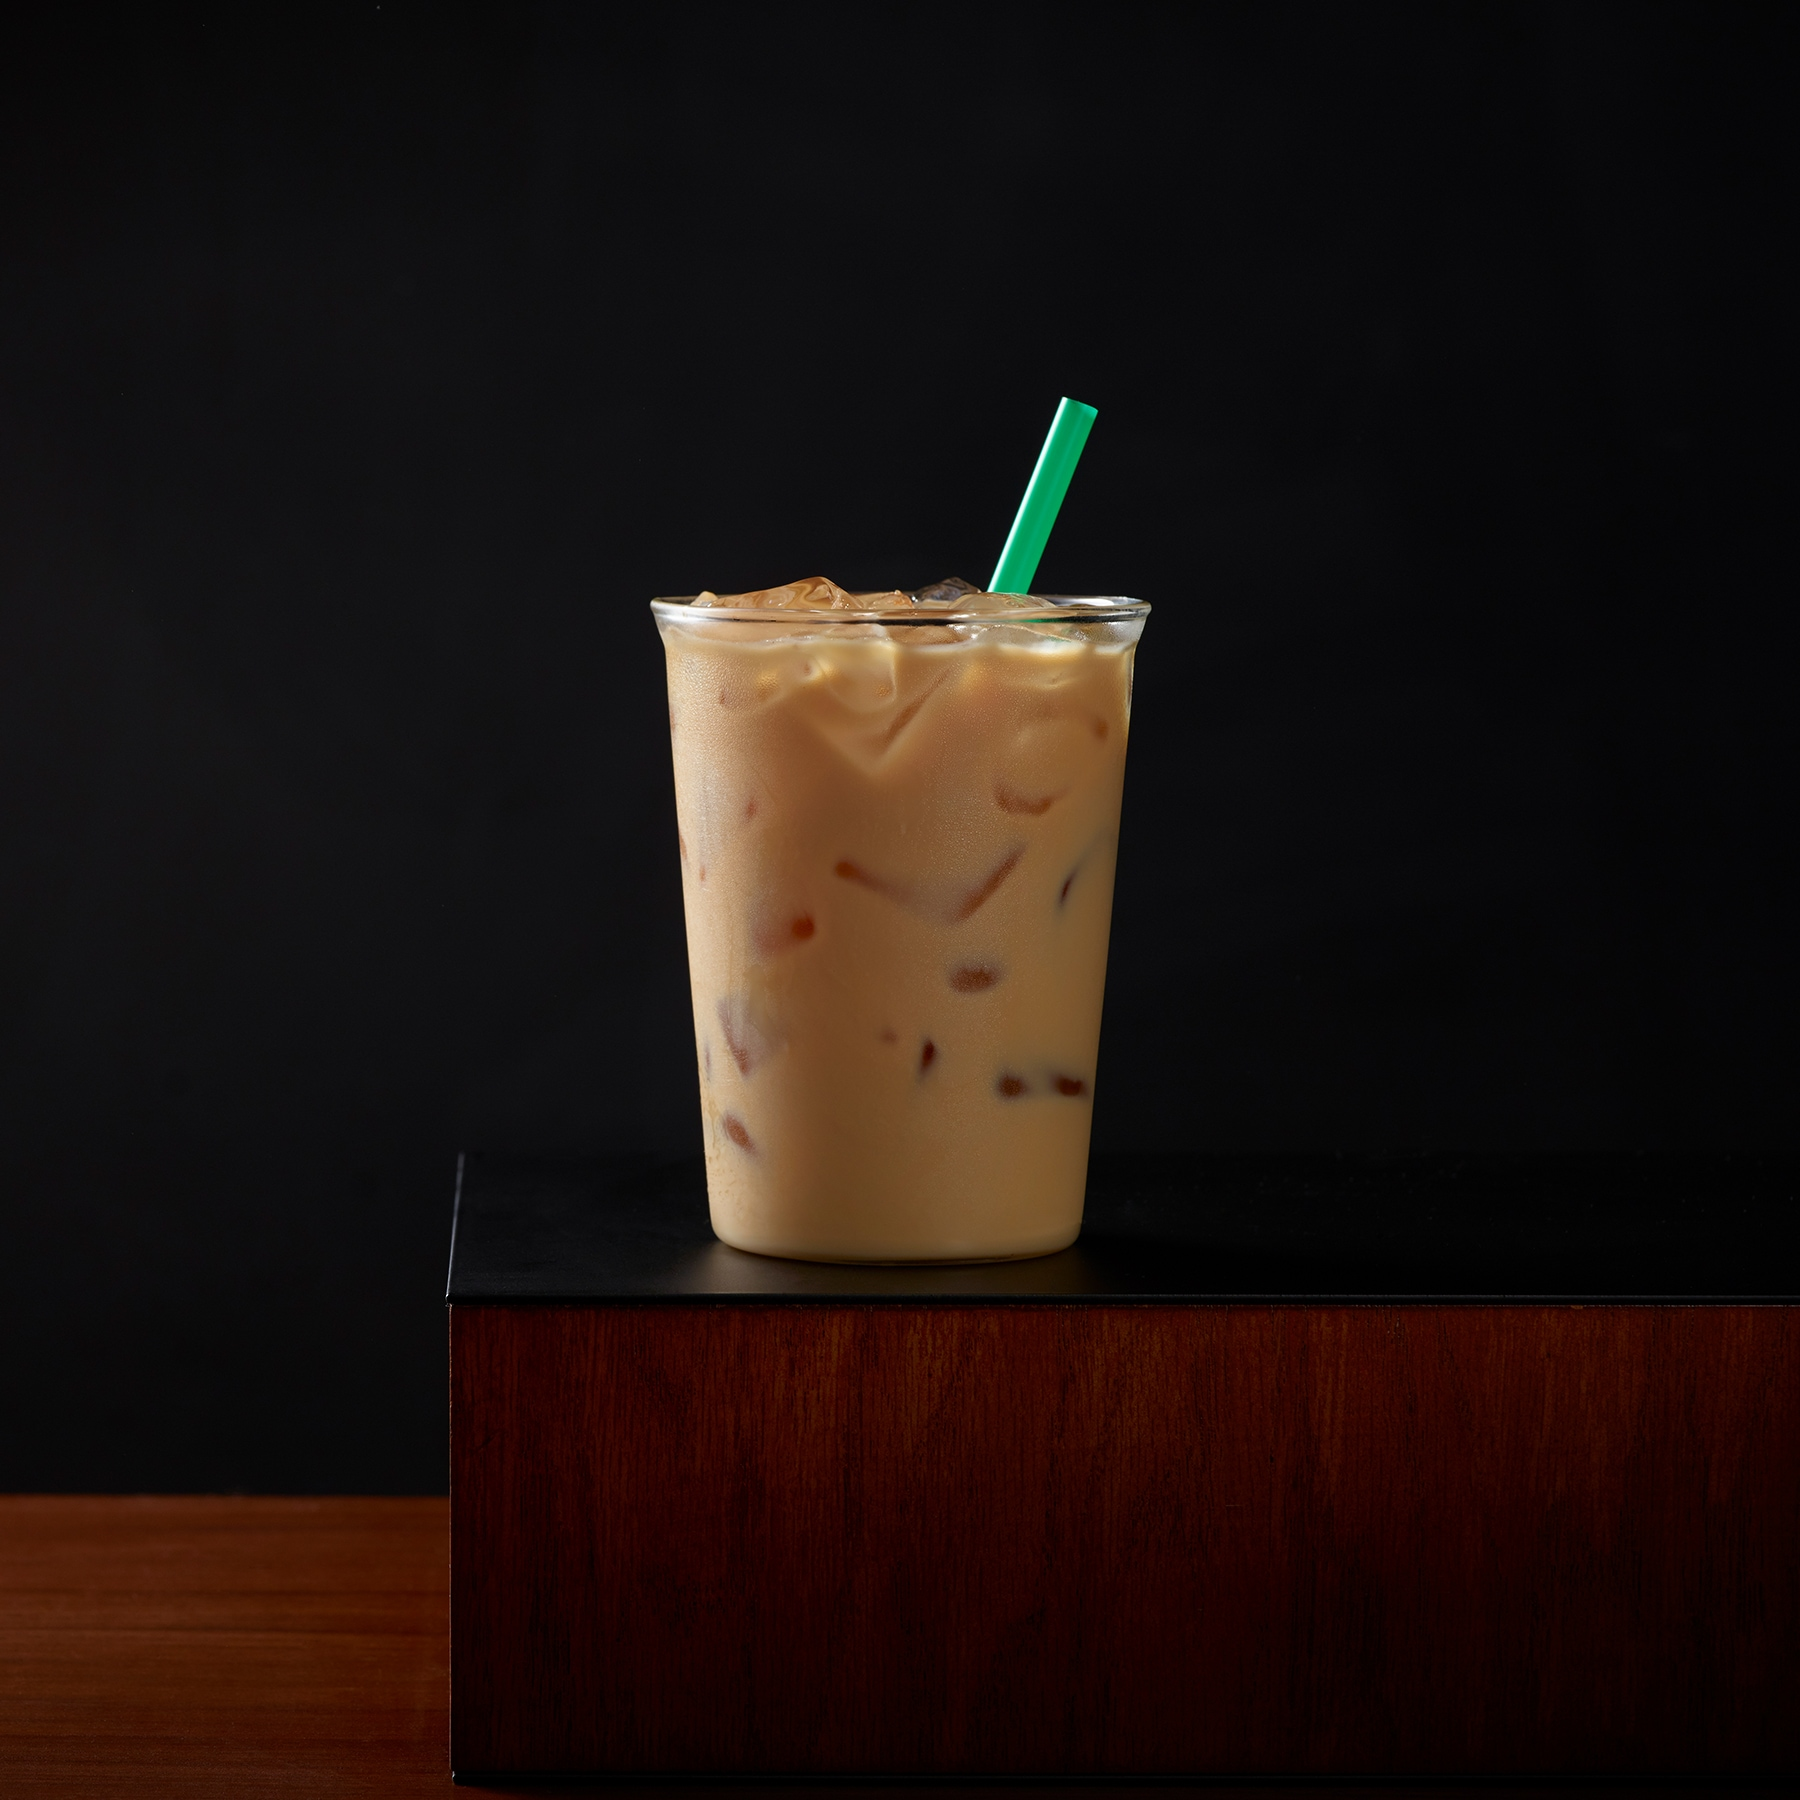 Caffe Latte Iced Caffè Latte Starbucks Coffee Company